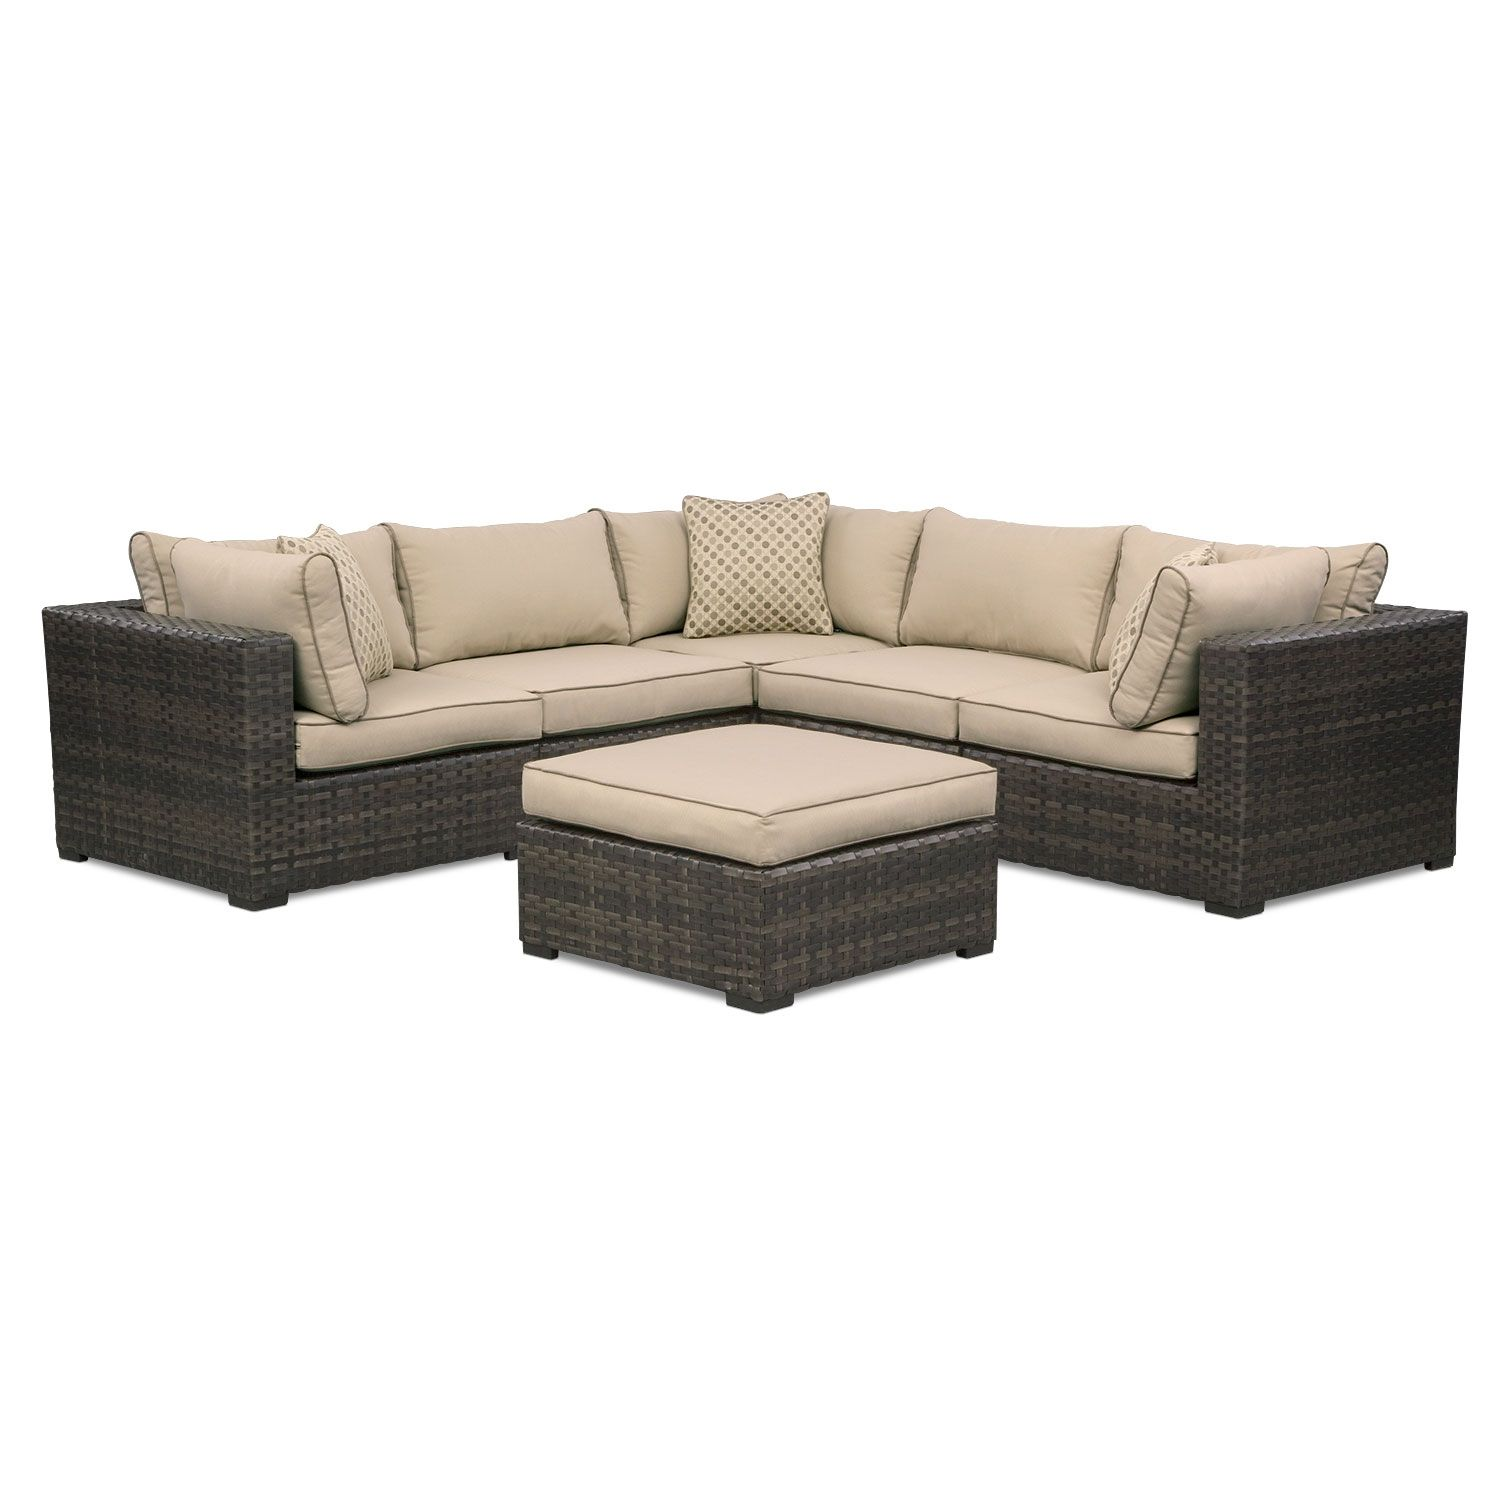 Amazing Out New Patio Line Is Sleek And Of The Best Quality. Shop Now! Outdoor · Value  City FurnitureDeck ...